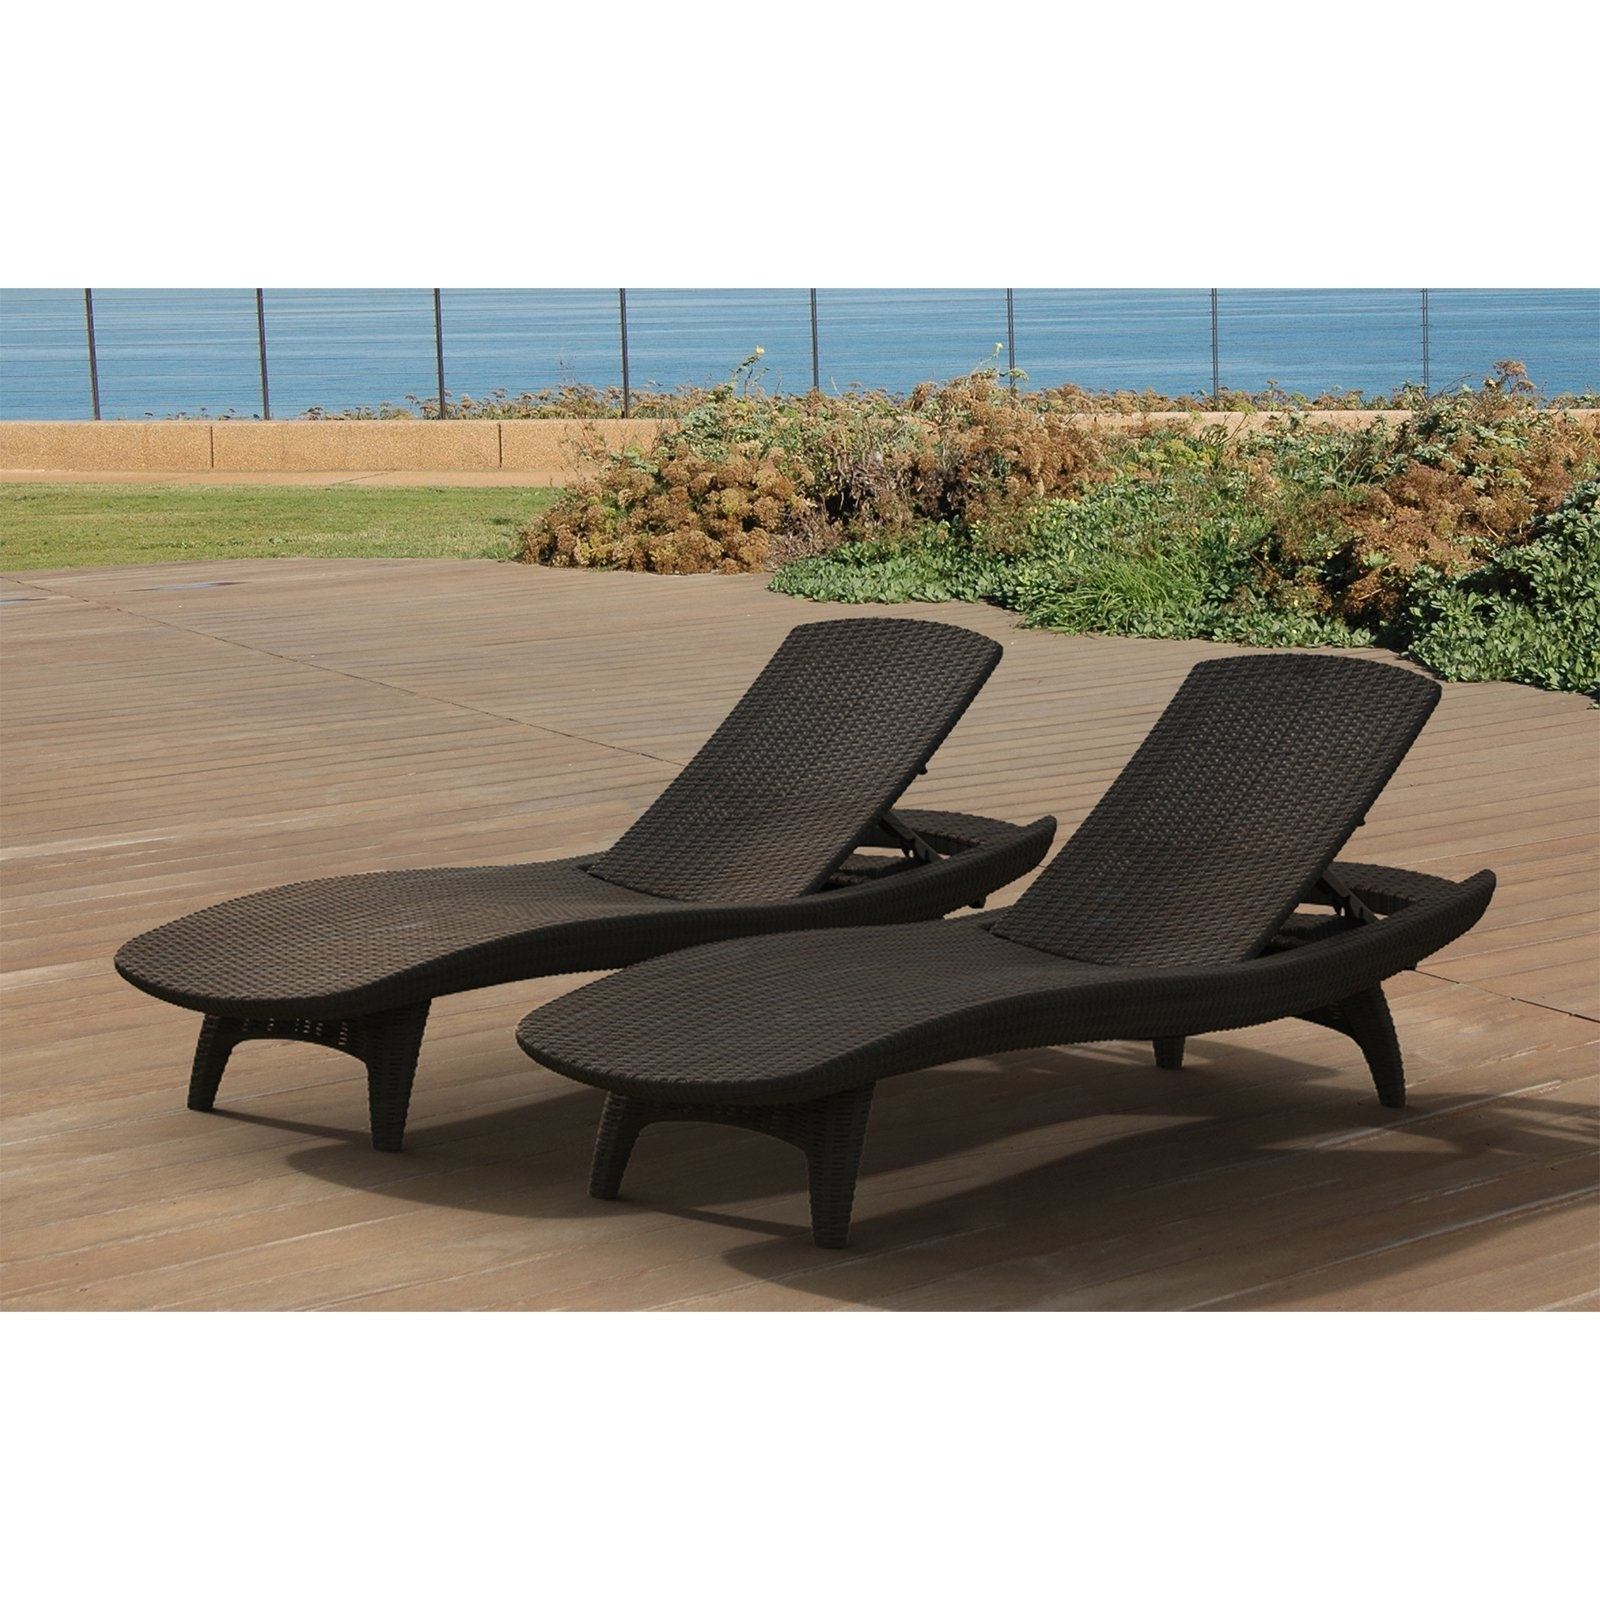 Patio Furniture Outlet Inexpensive Outdoor Furniture Beach Lounge Pertaining To Well Known Outdoor Pool Chaise Lounge Chairs (View 10 of 15)